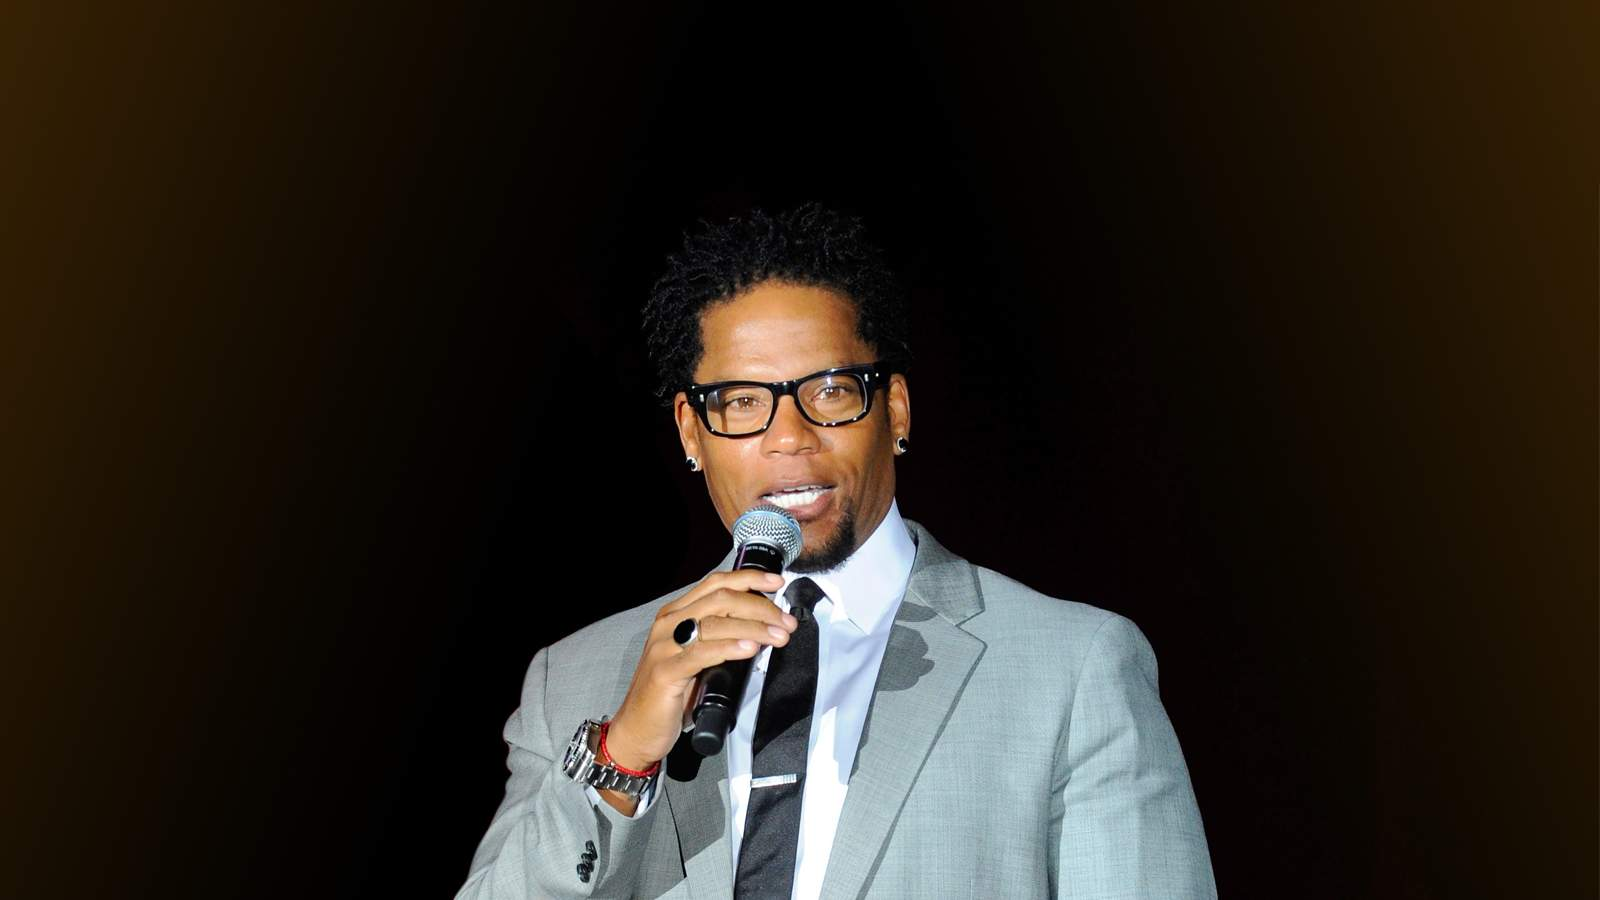 DL Hughley (21+ Event) (Rescheduled from 1/22)